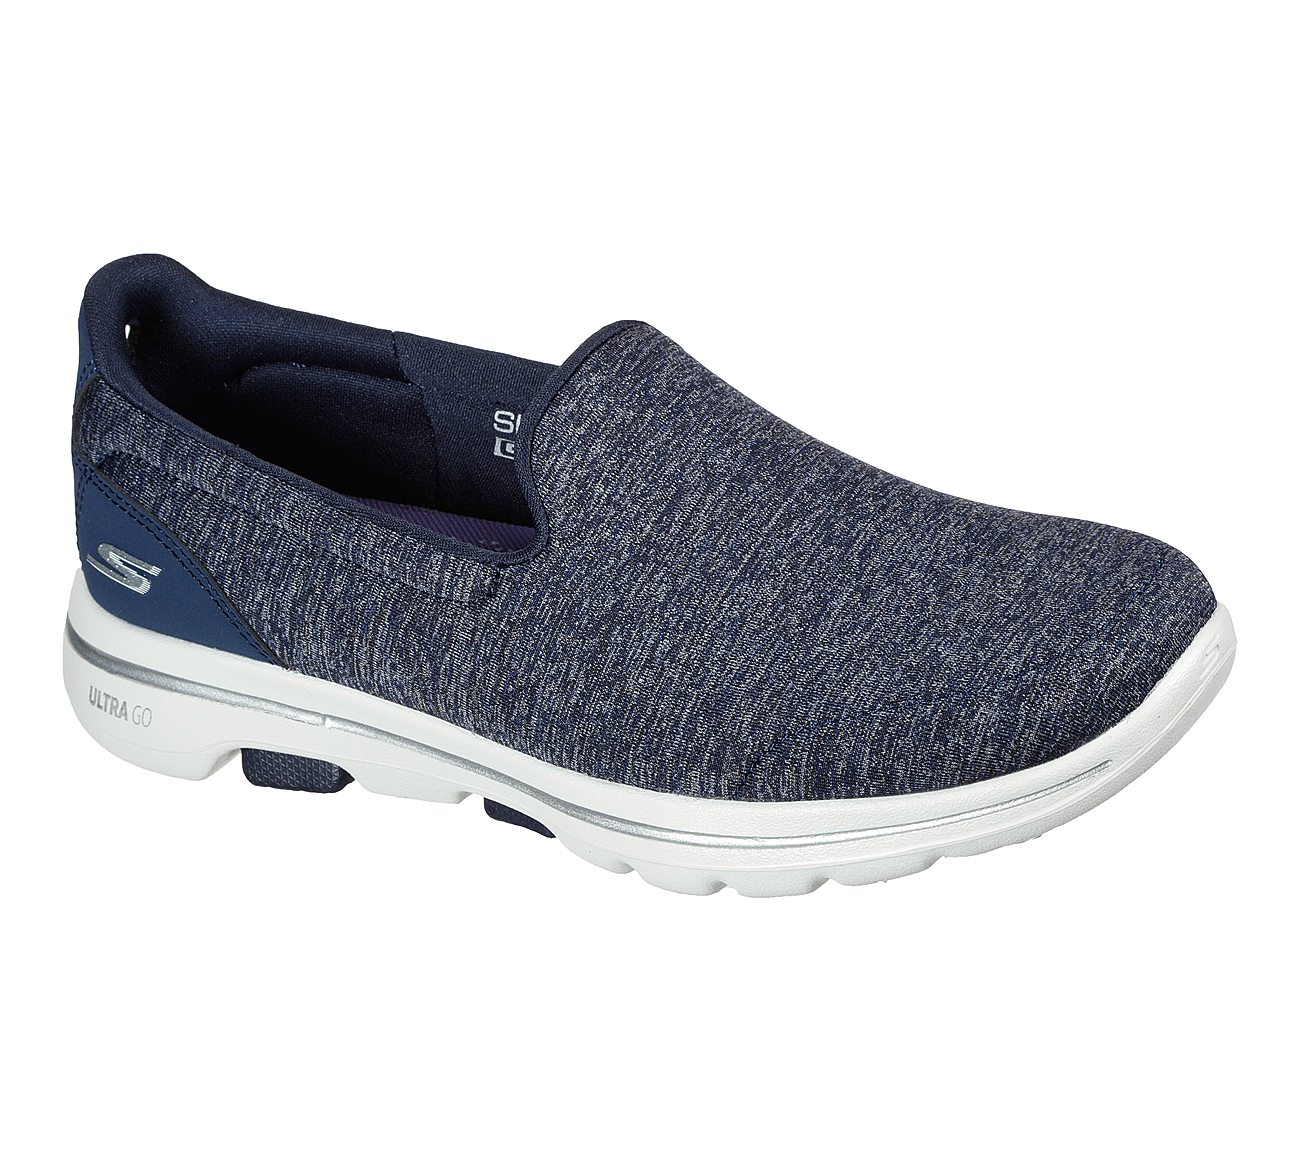 skechers go walk offers